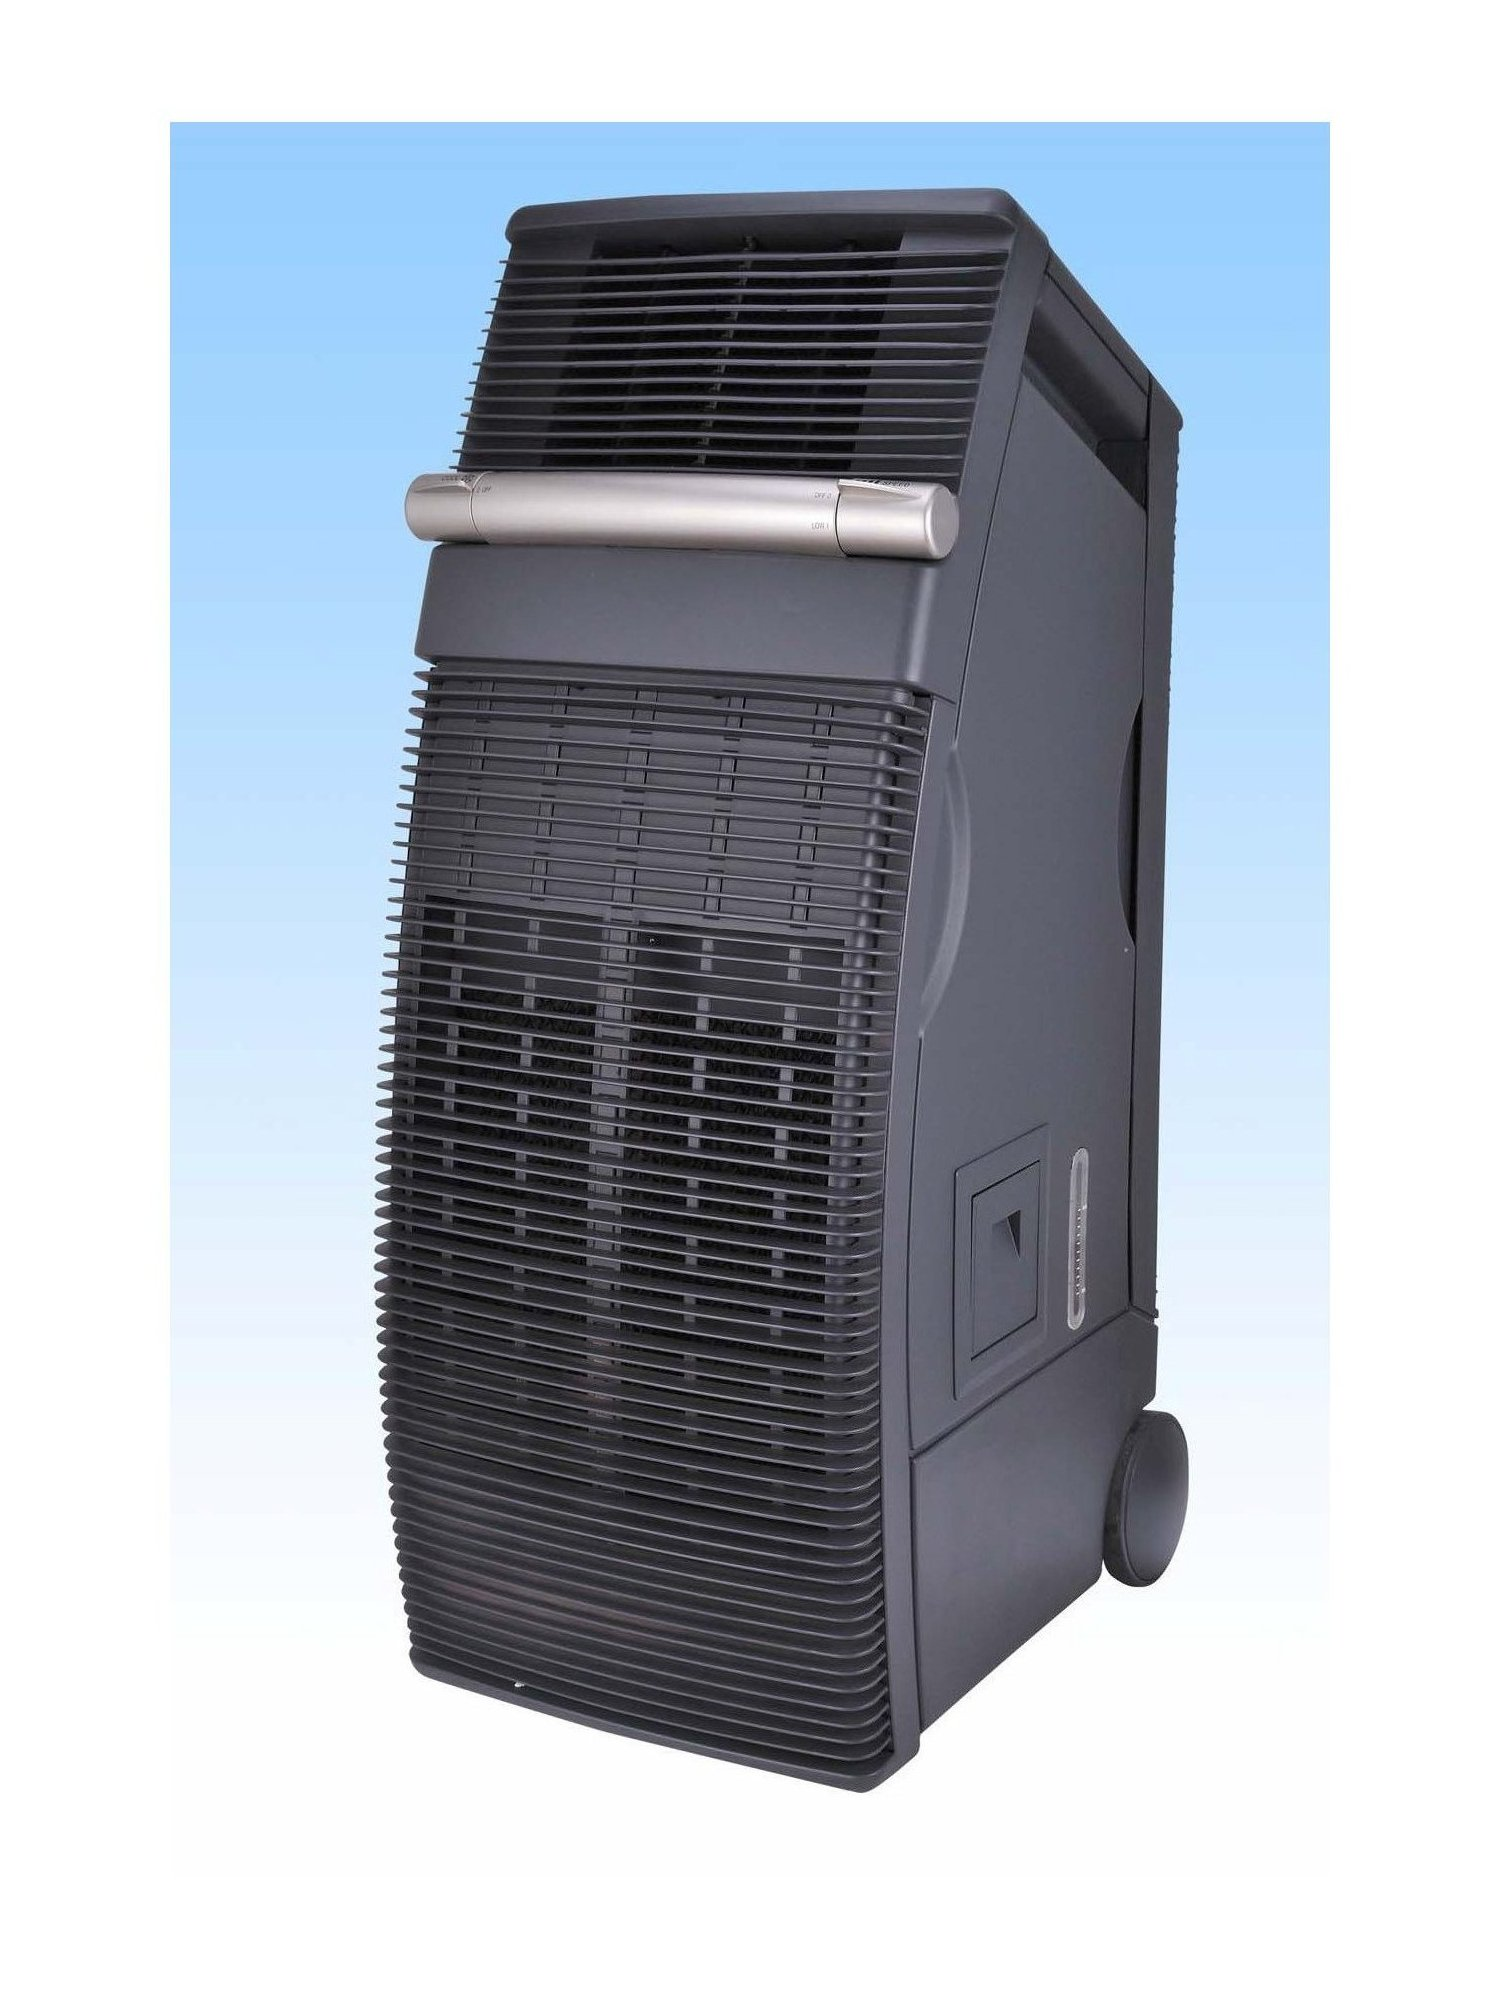 #046CC7 Rapid P10 IPX4 Rated Outdoor / Indoor Evaporative Air  Top of The Line 13334 Outside Portable Air Conditioner picture with 1500x2000 px on helpvideos.info - Air Conditioners, Air Coolers and more